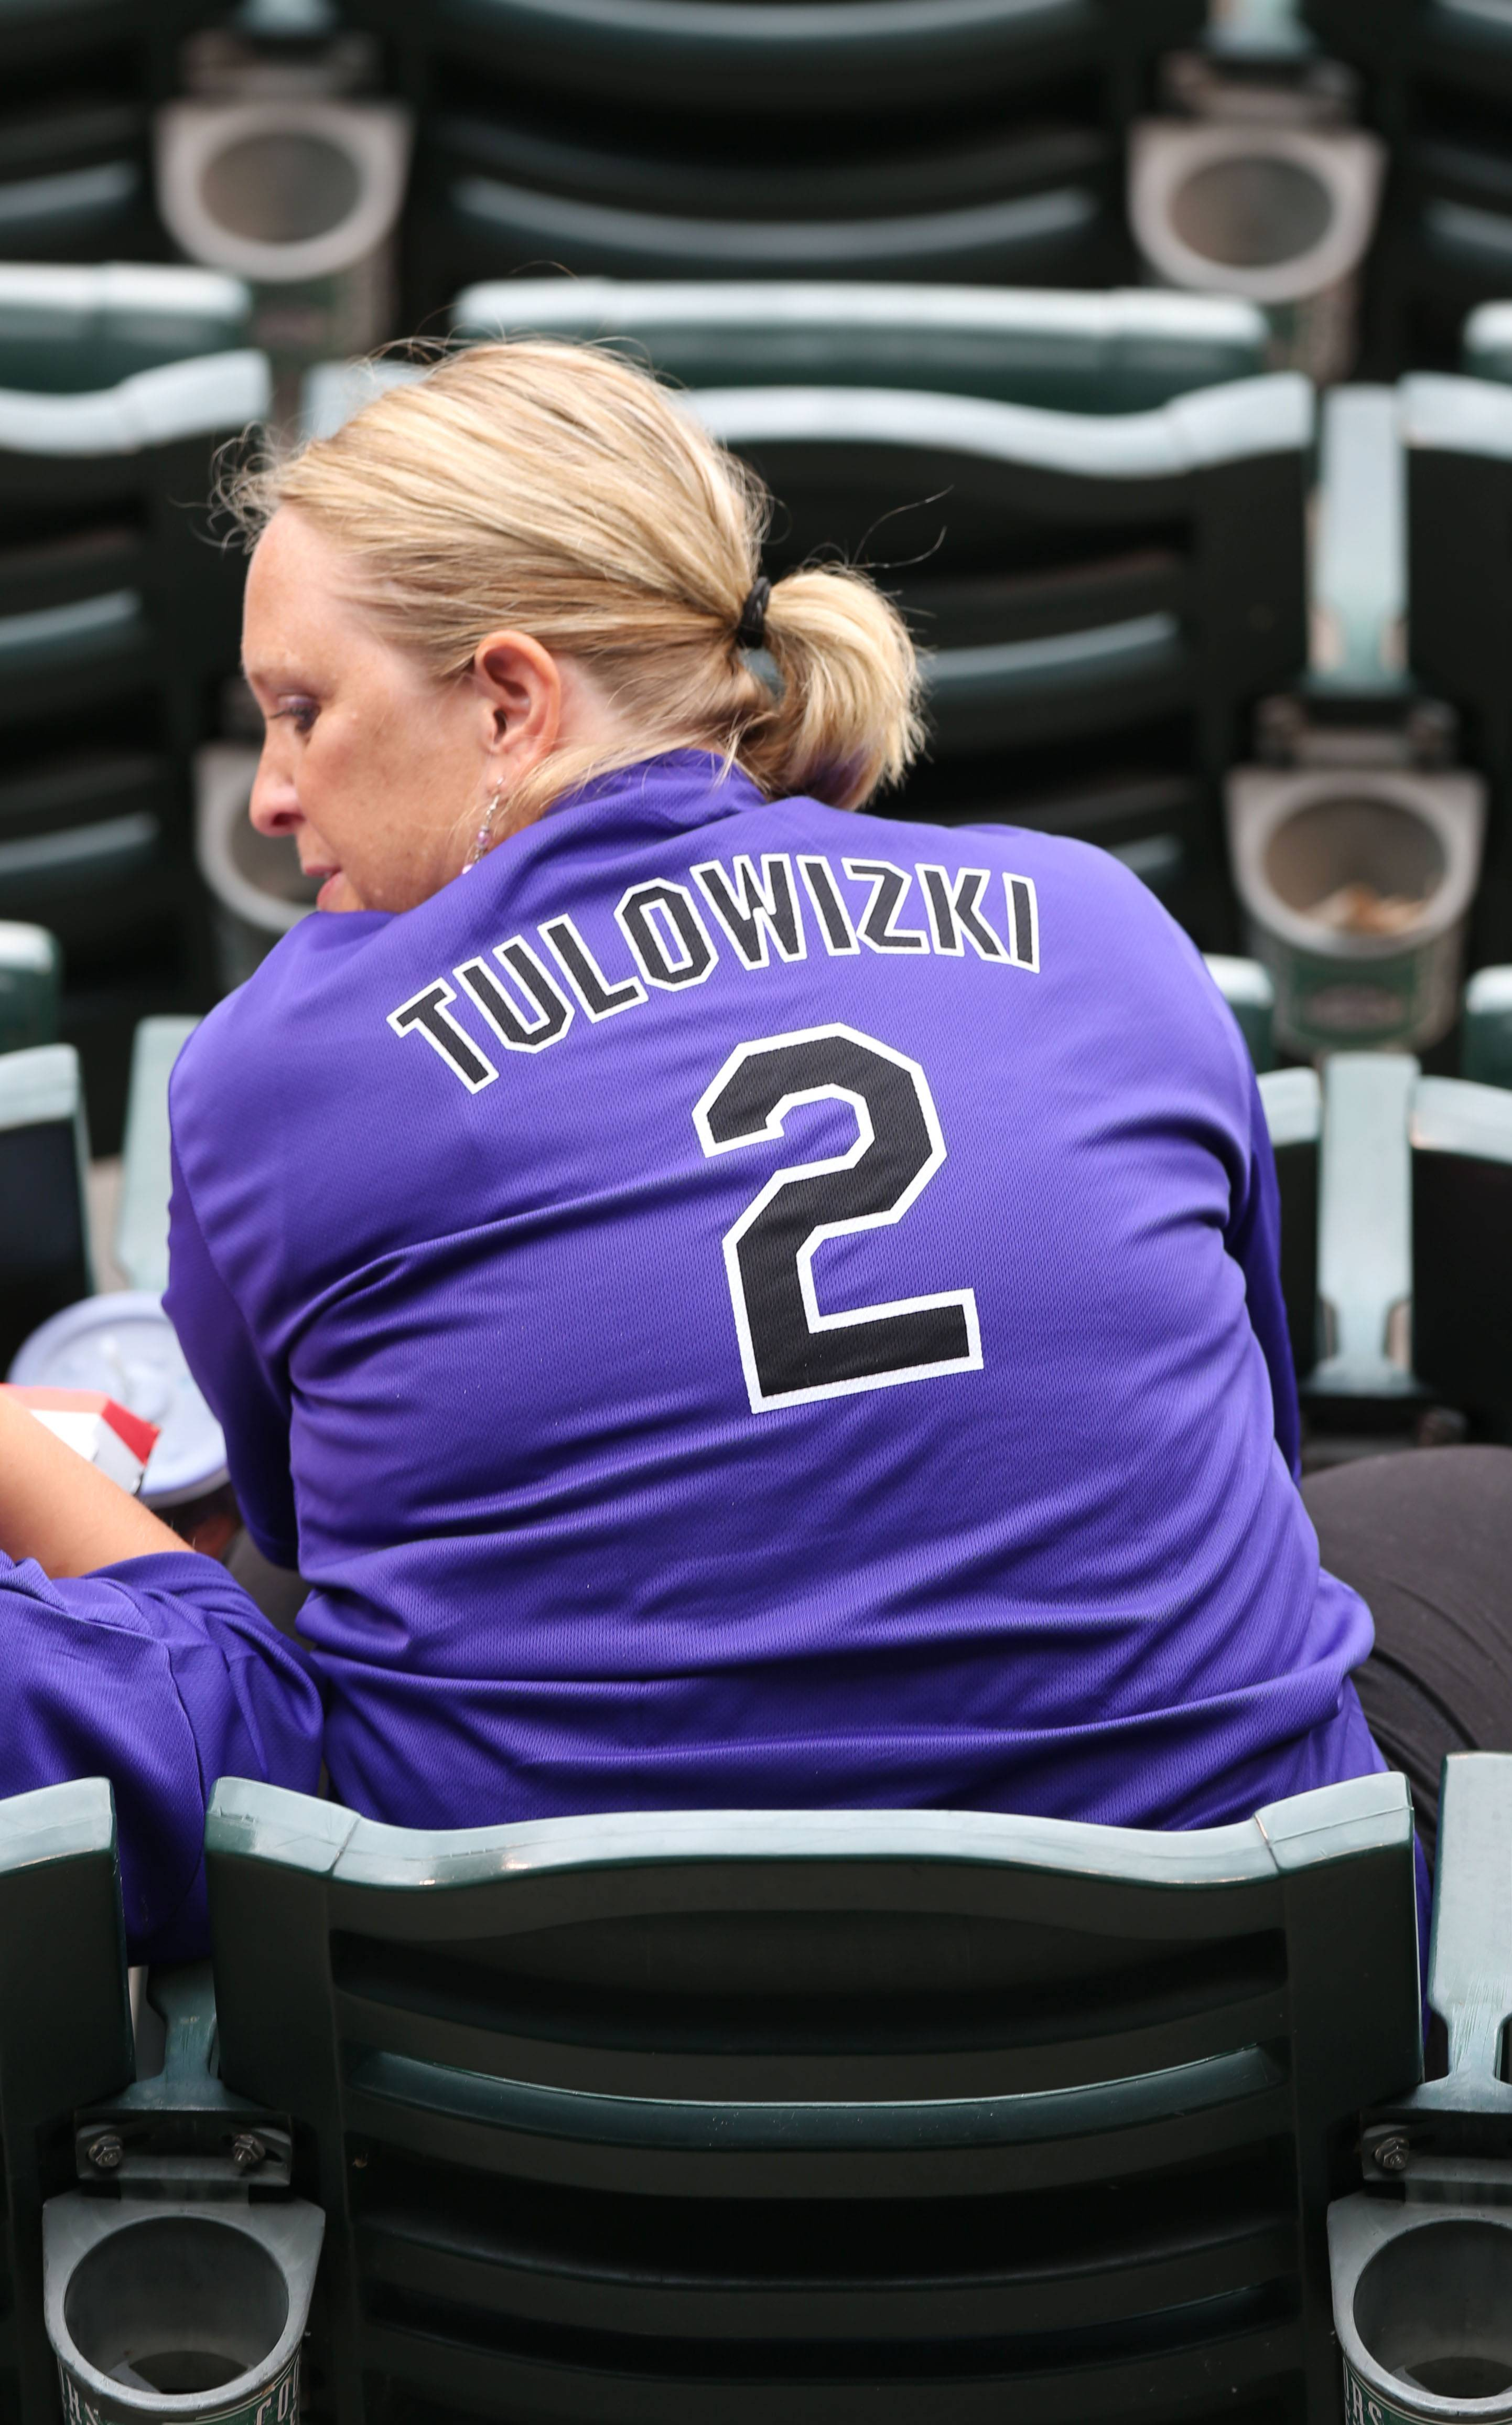 A fan wears one of the misspelled Tulowitzki jerseys given to attendees of Saturday's Pirates-Rockies game in Denver.